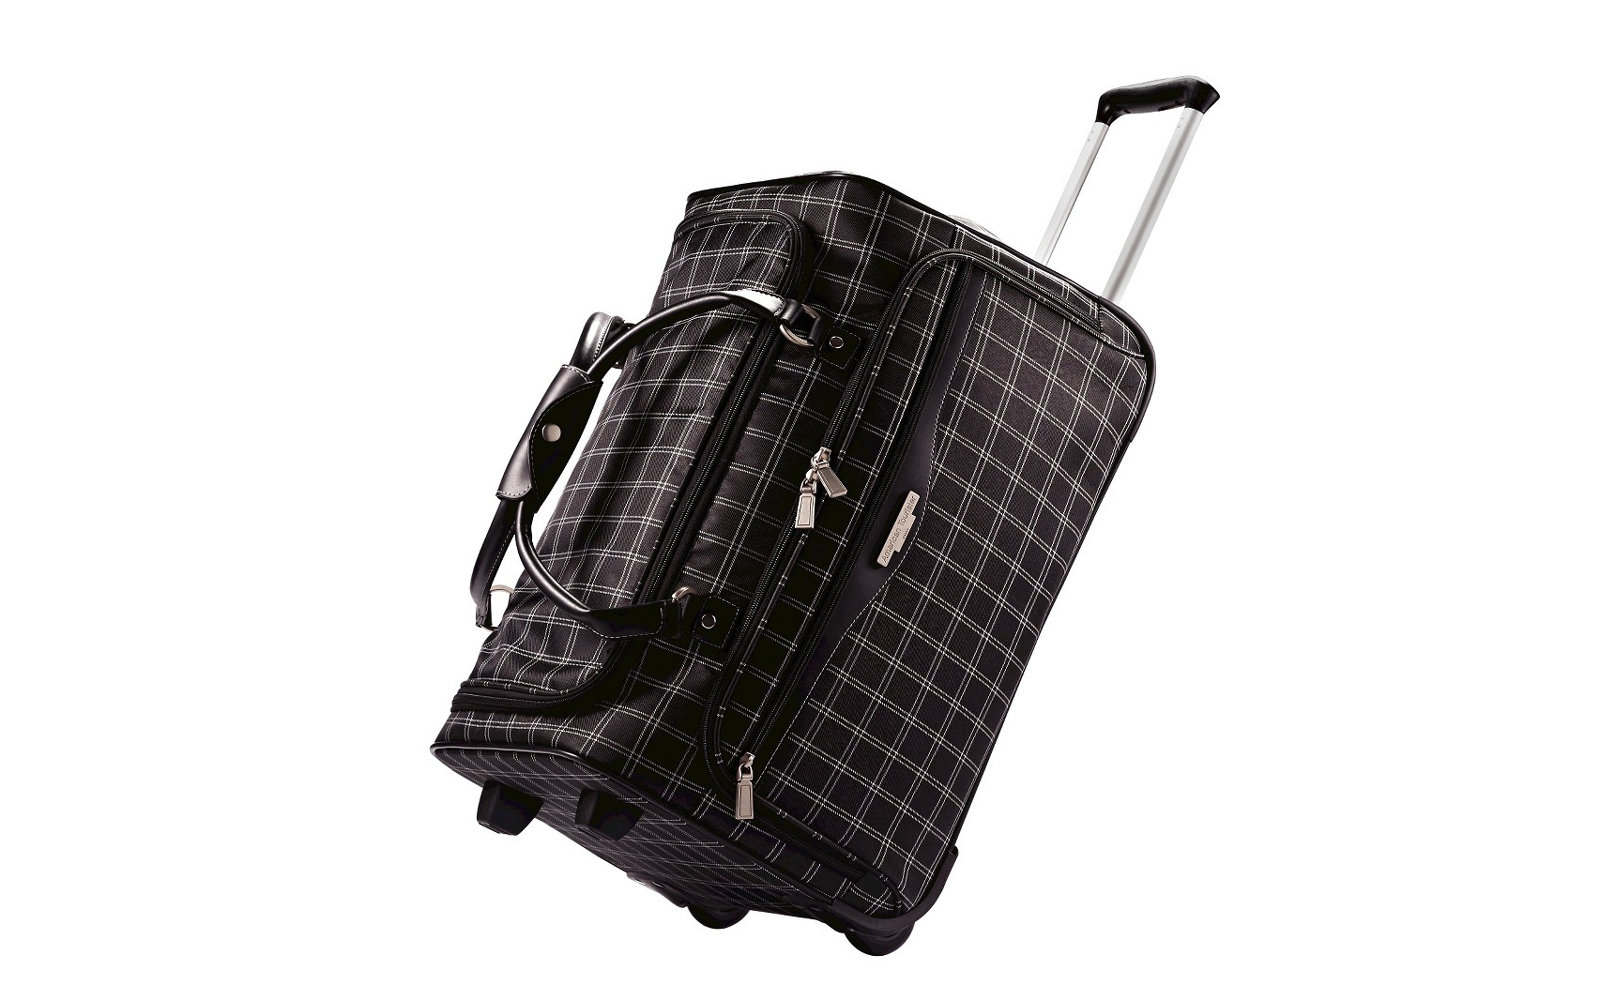 American Tourister Rolling Duffel Bag